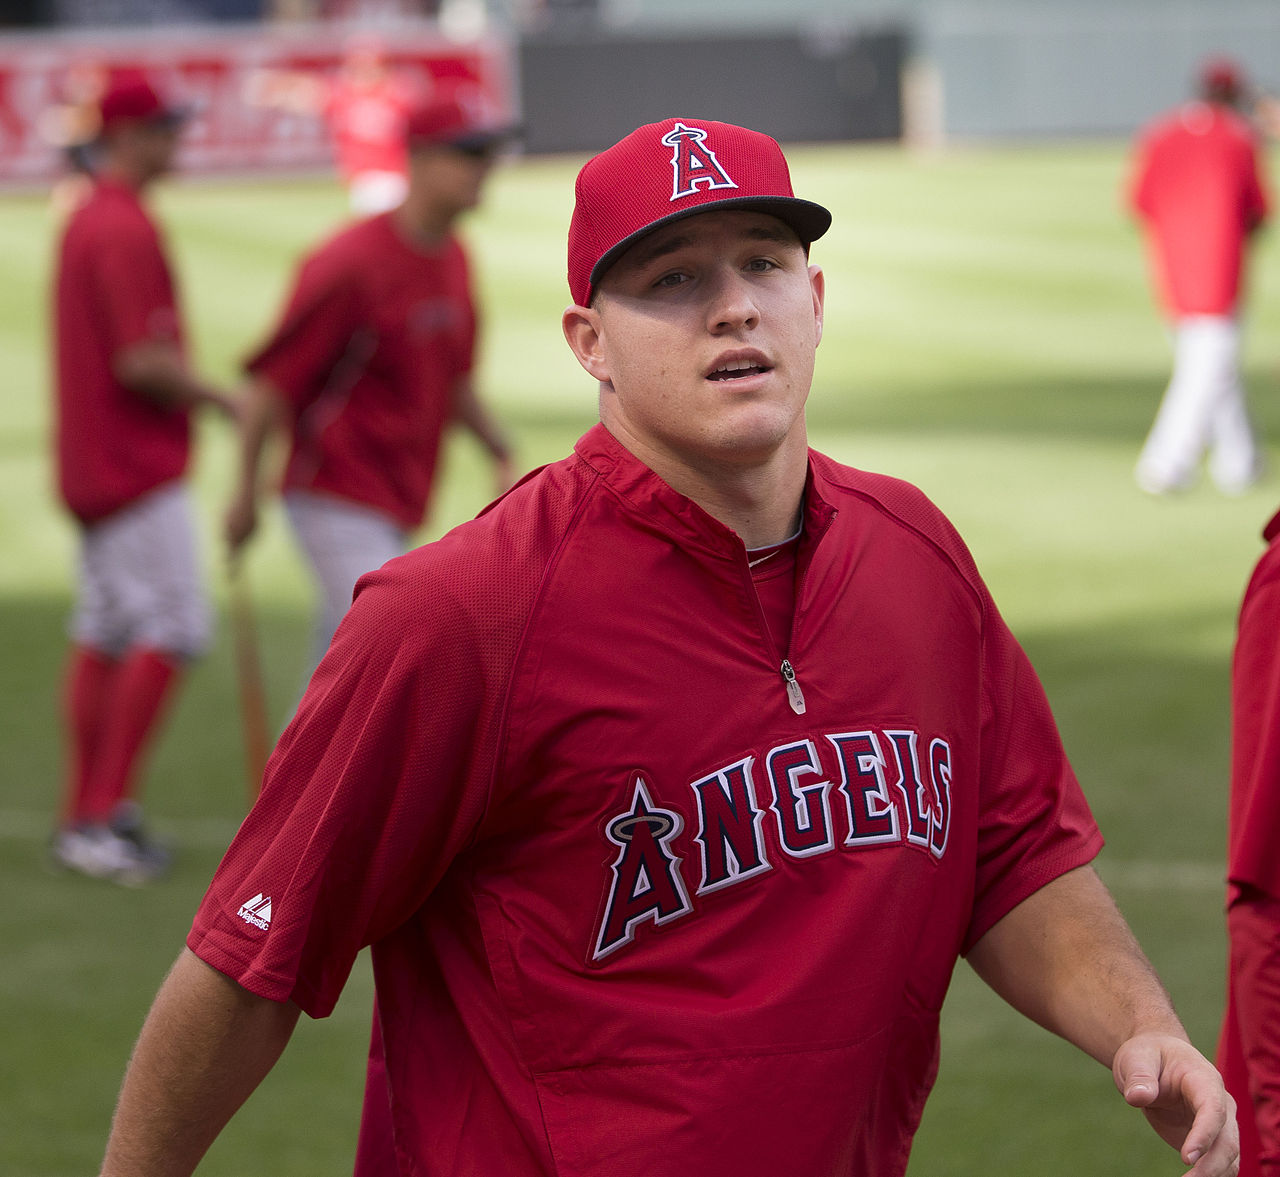 Angels Superstar Mike Trout Signs The Richest Deal In Pro Sports